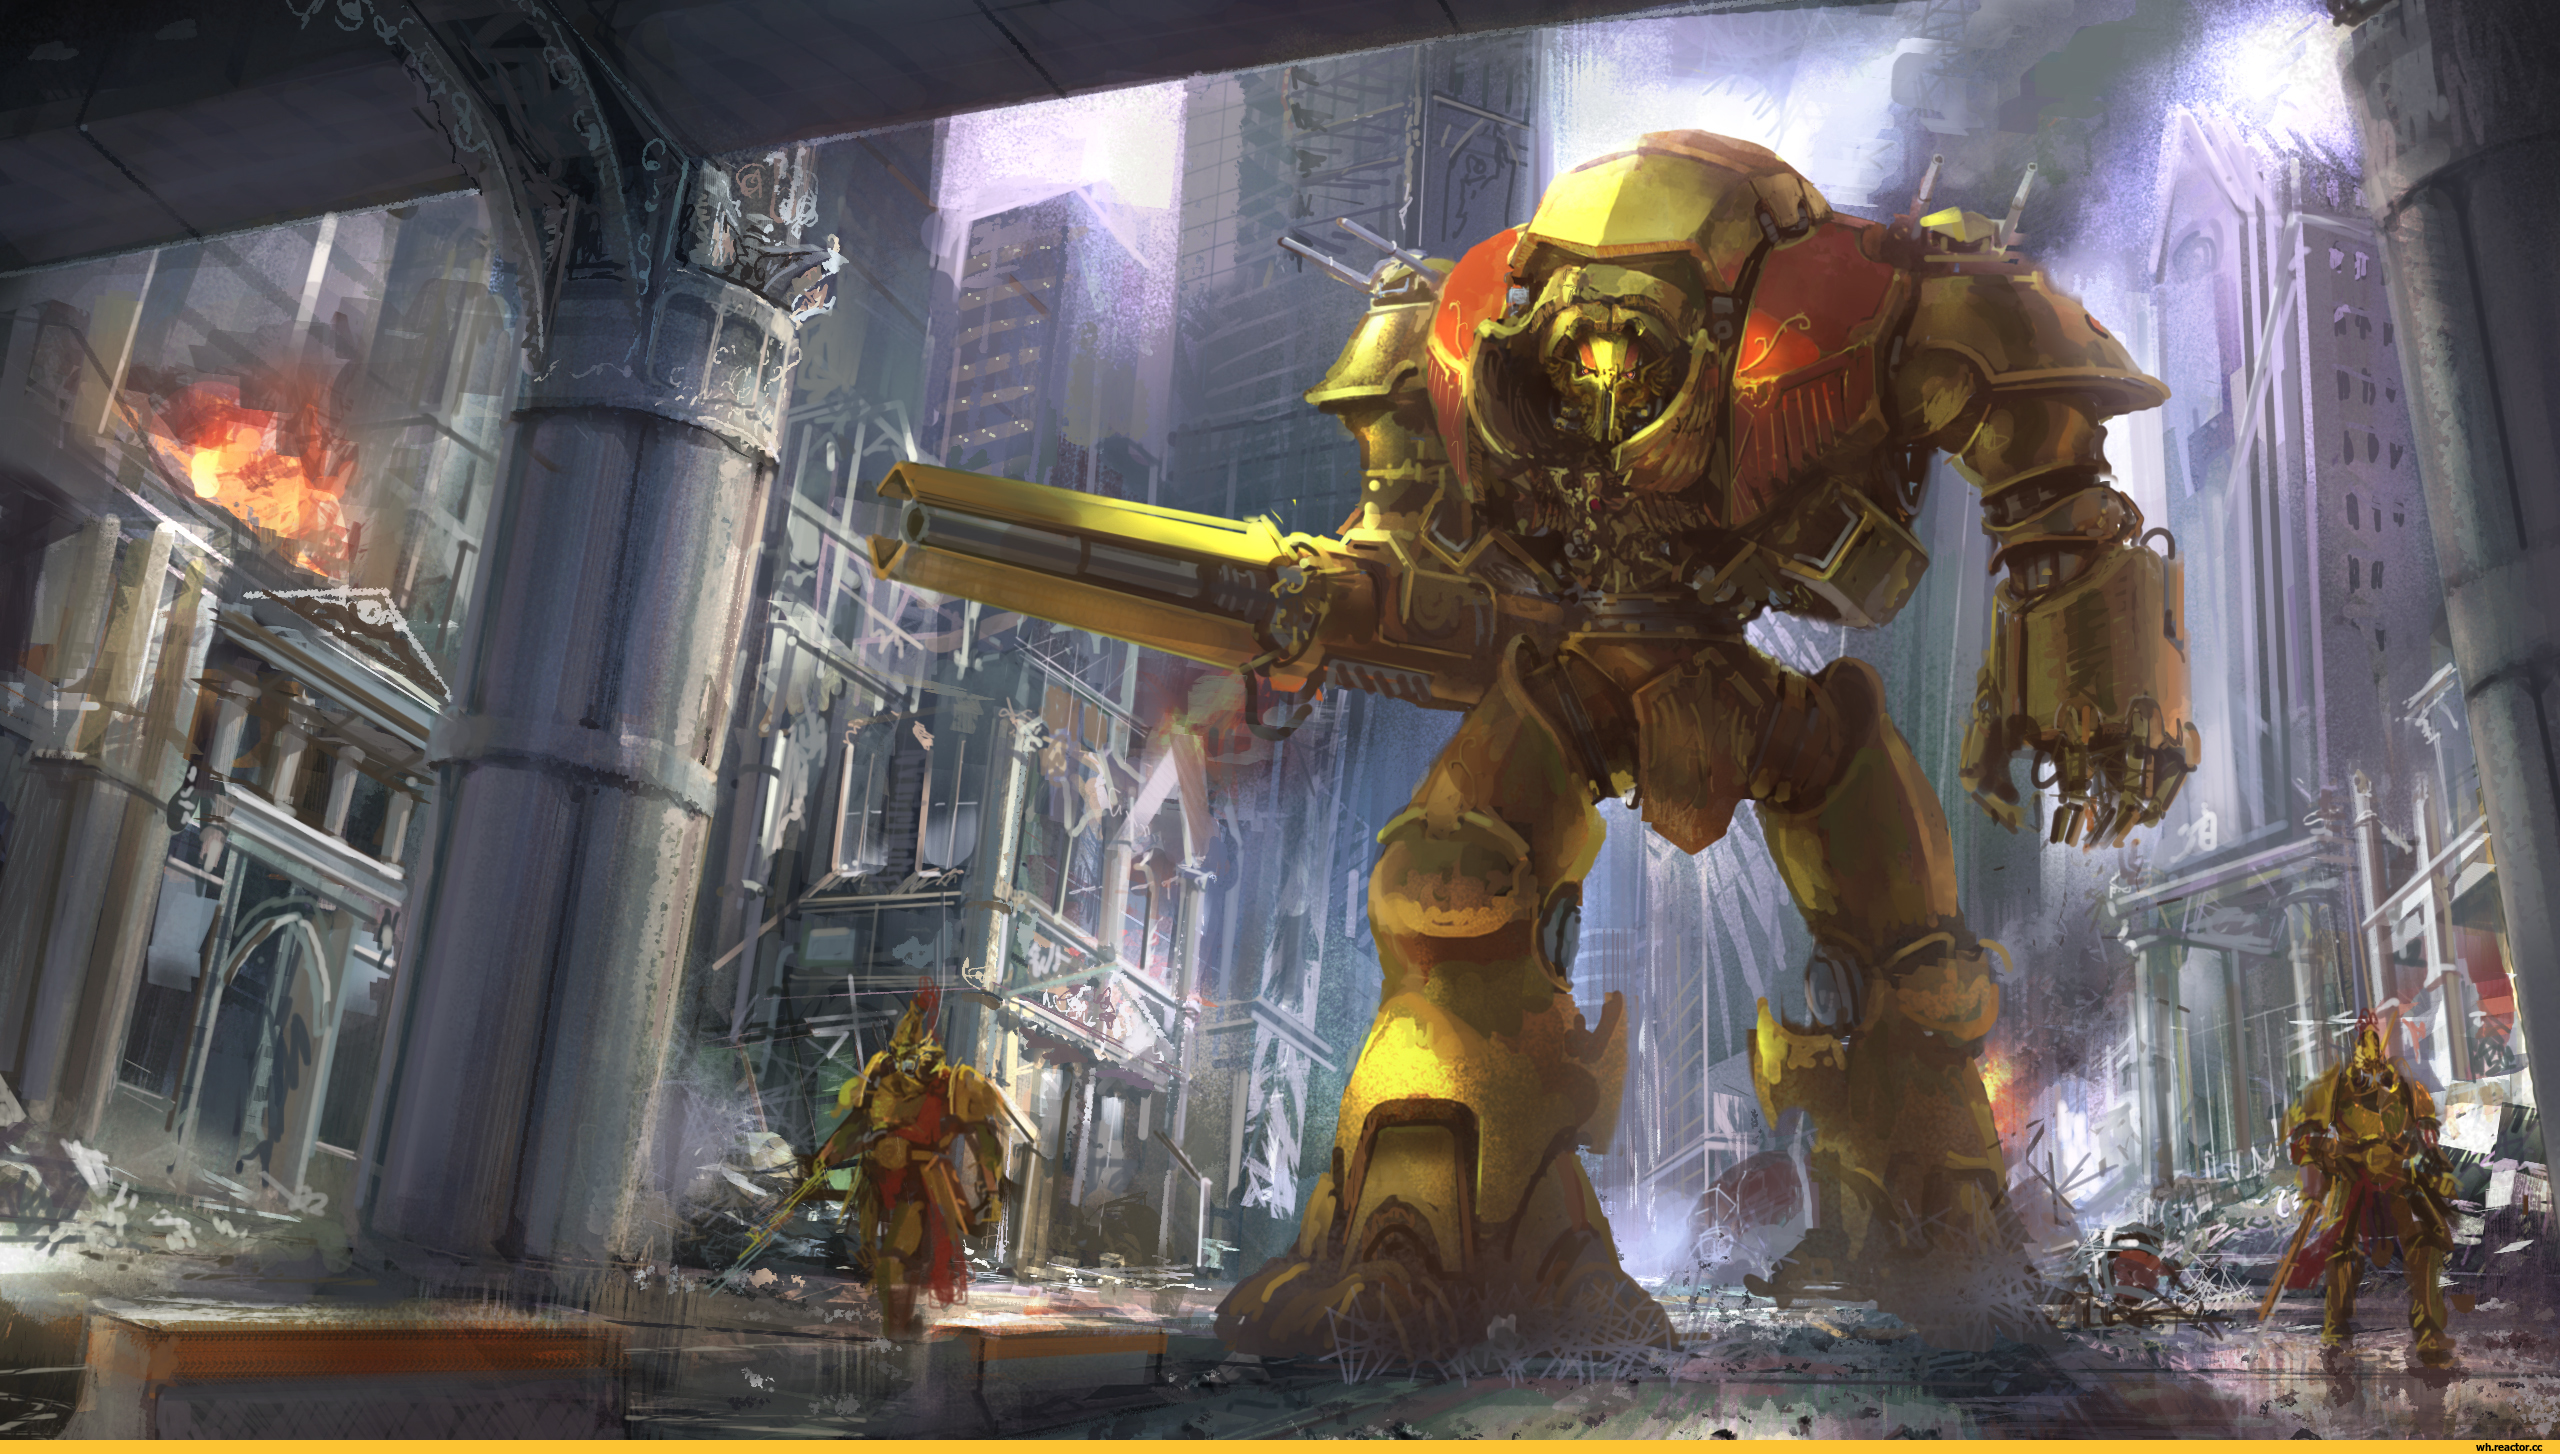 Warhammer 40k Wallpaper 4k Posted By Christopher Thompson